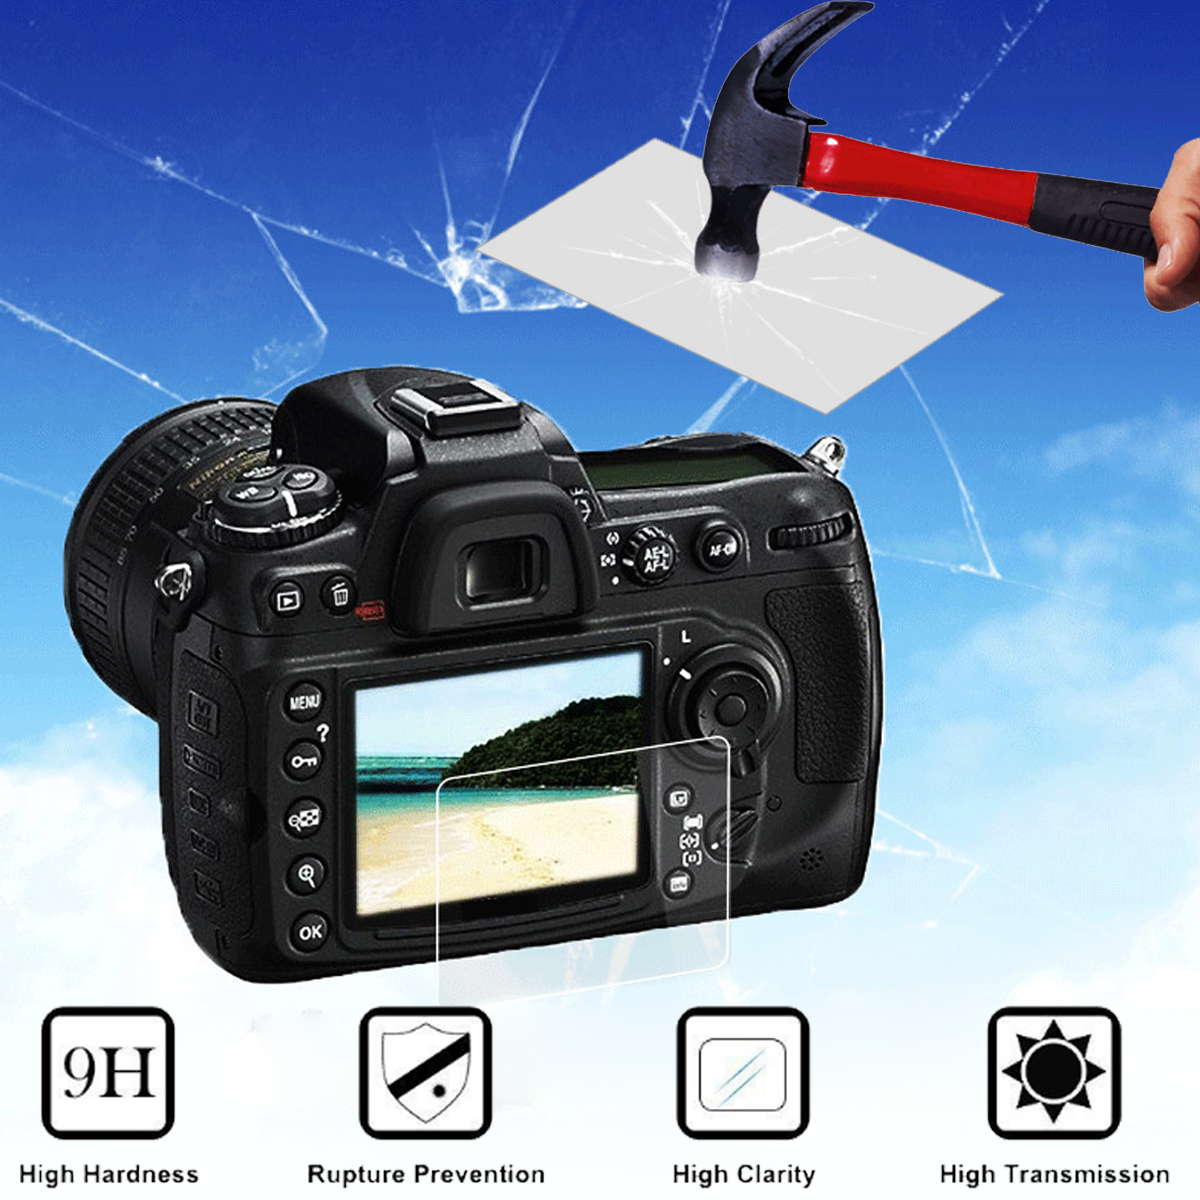 Camera Tempered Glass Film Screen Protector Film for Canon EOS 5D Mark III MK IV 5DS